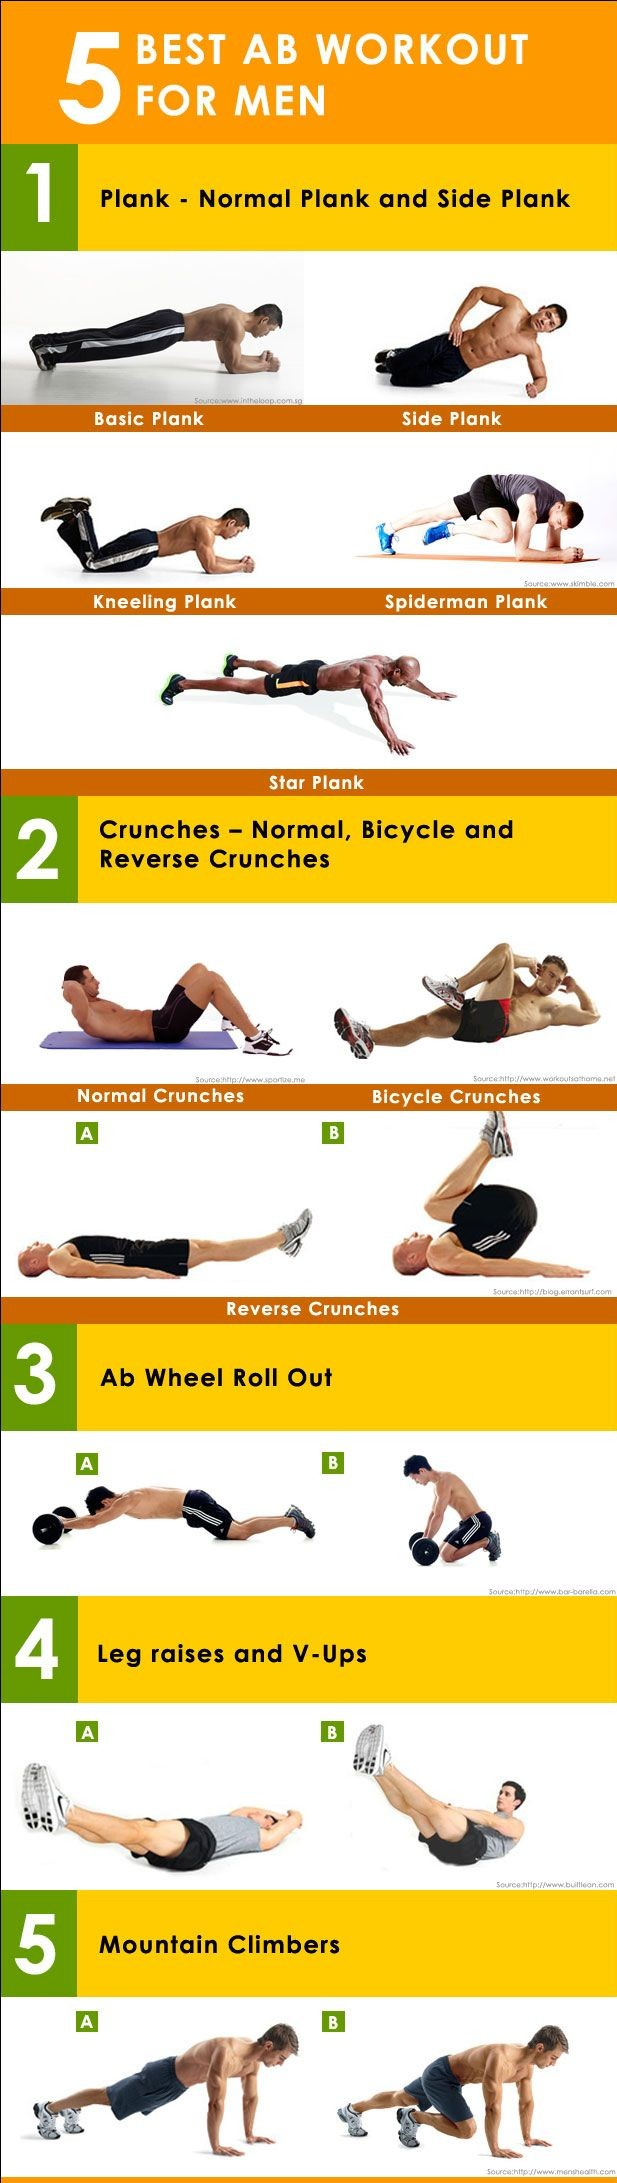 5 abs exercises